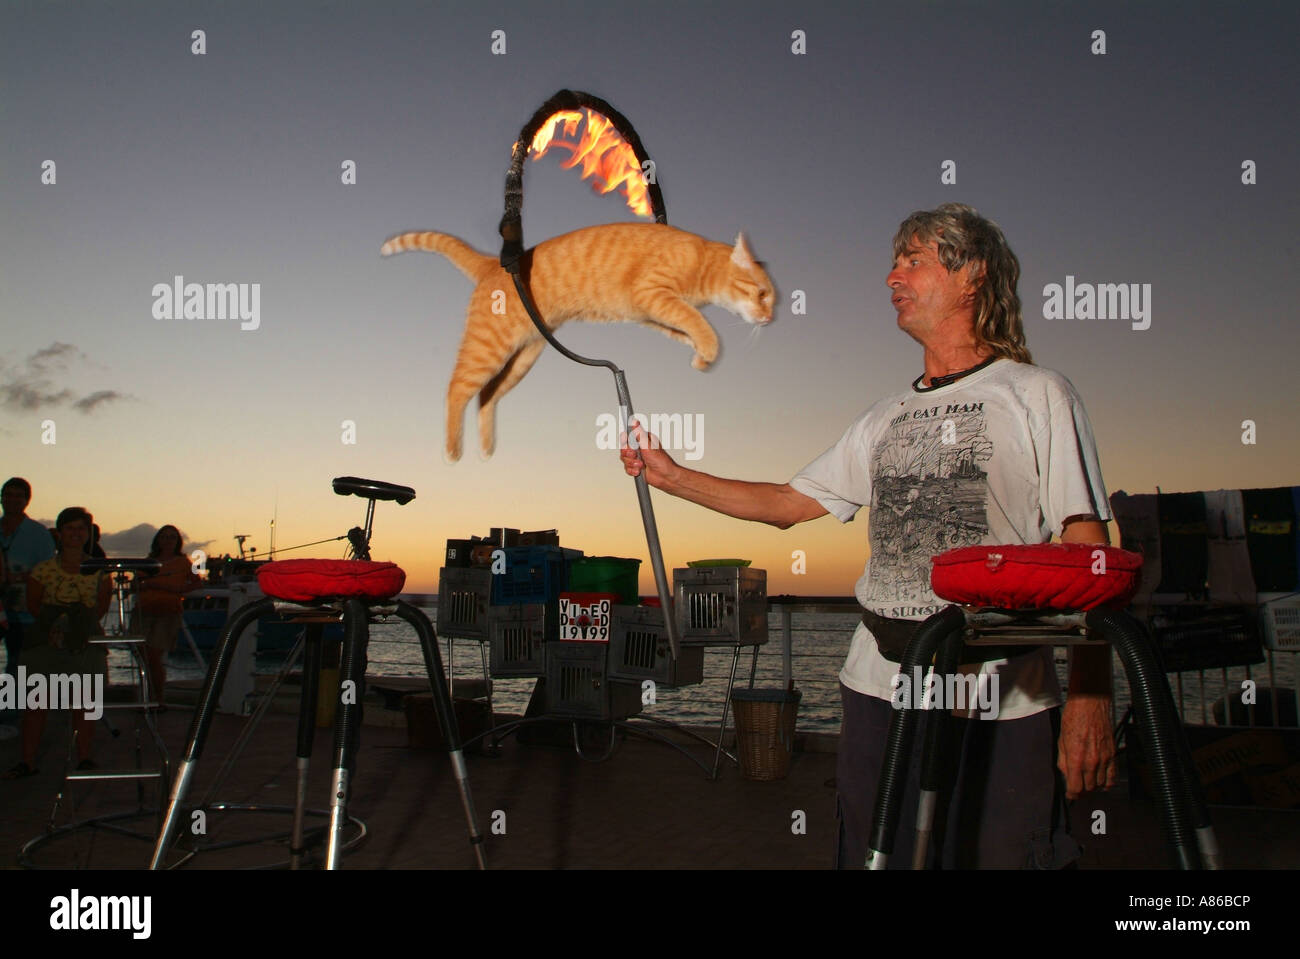 the-catman-performs-with-live-trained-cats-at-mallory-square-sunset-A86BCP.jpg